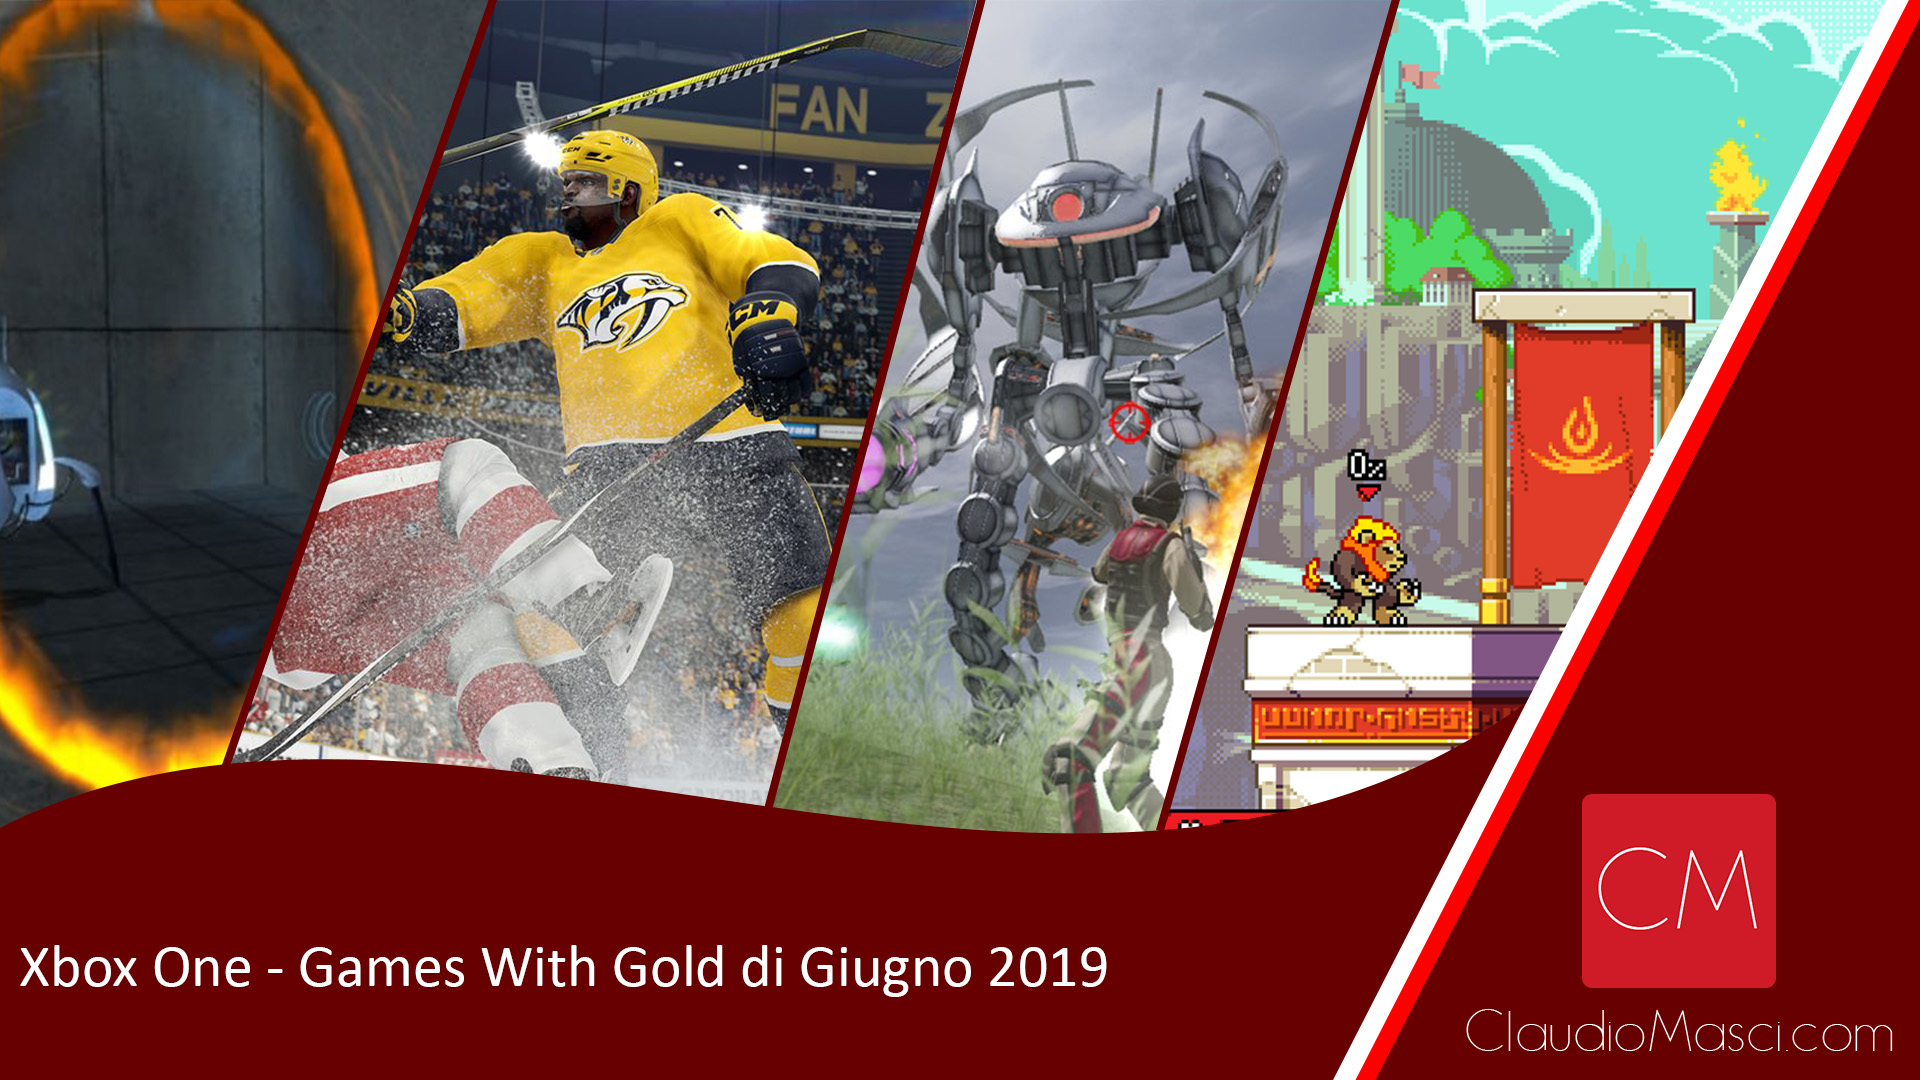 Xbox One – Games With Gold di Giugno 2019